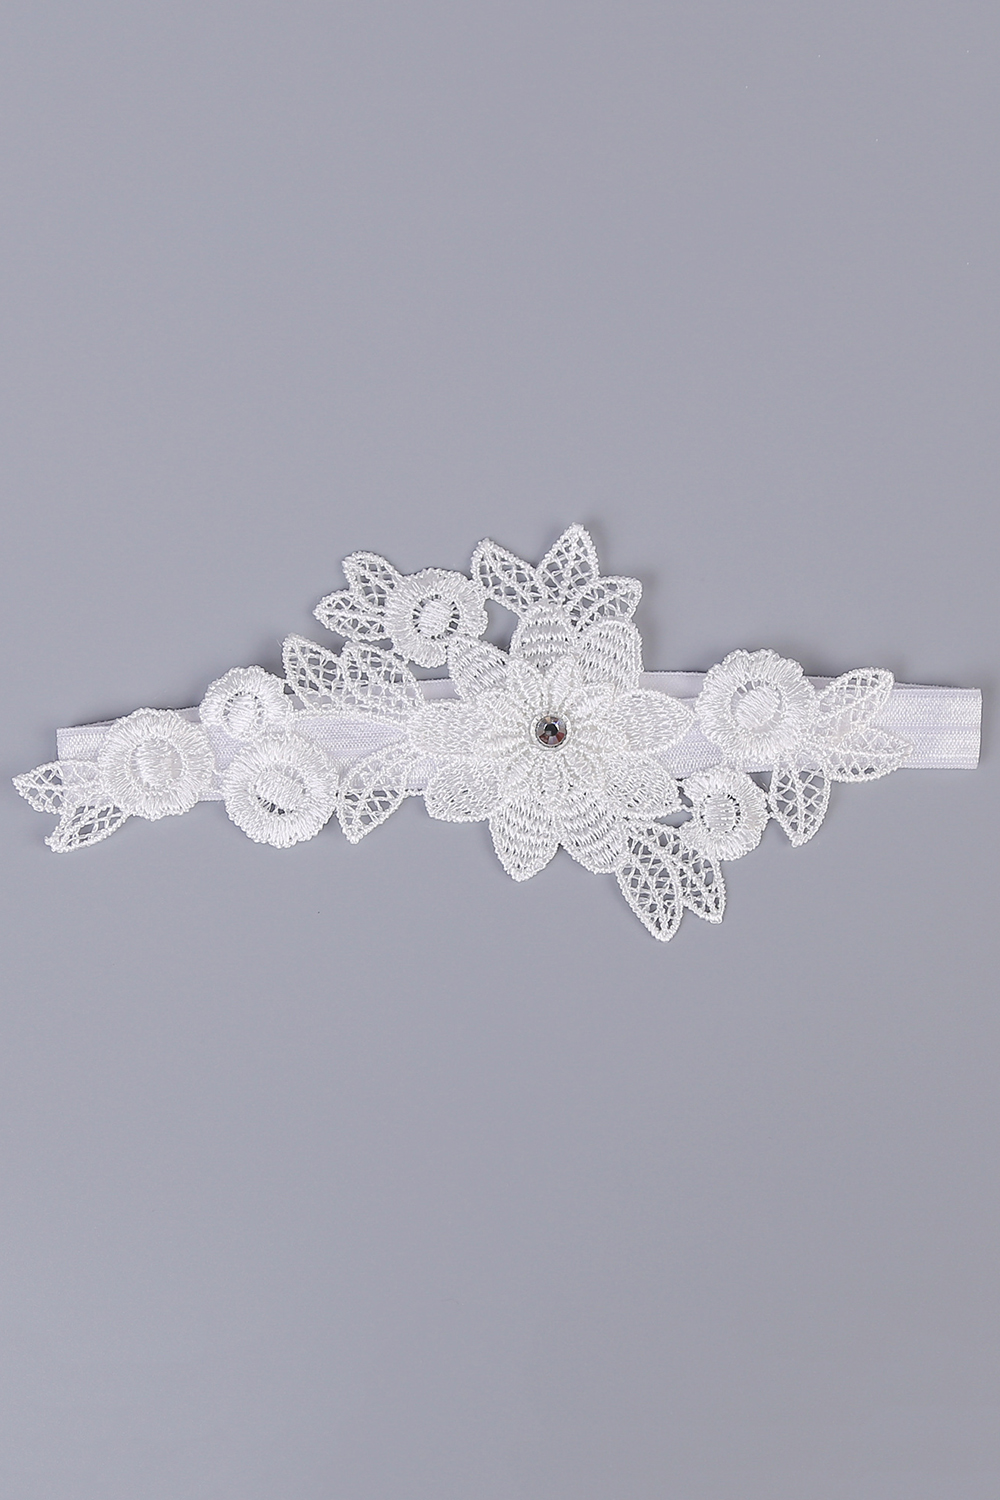 Fast Deliver Wedding Gloves 2018 Hot-selling Vintage Lace Bridal Leg Garter With Blue Rhinestones Ivory Appliques Wedding Accessories Fi034 Weddings & Events Wedding Accessories